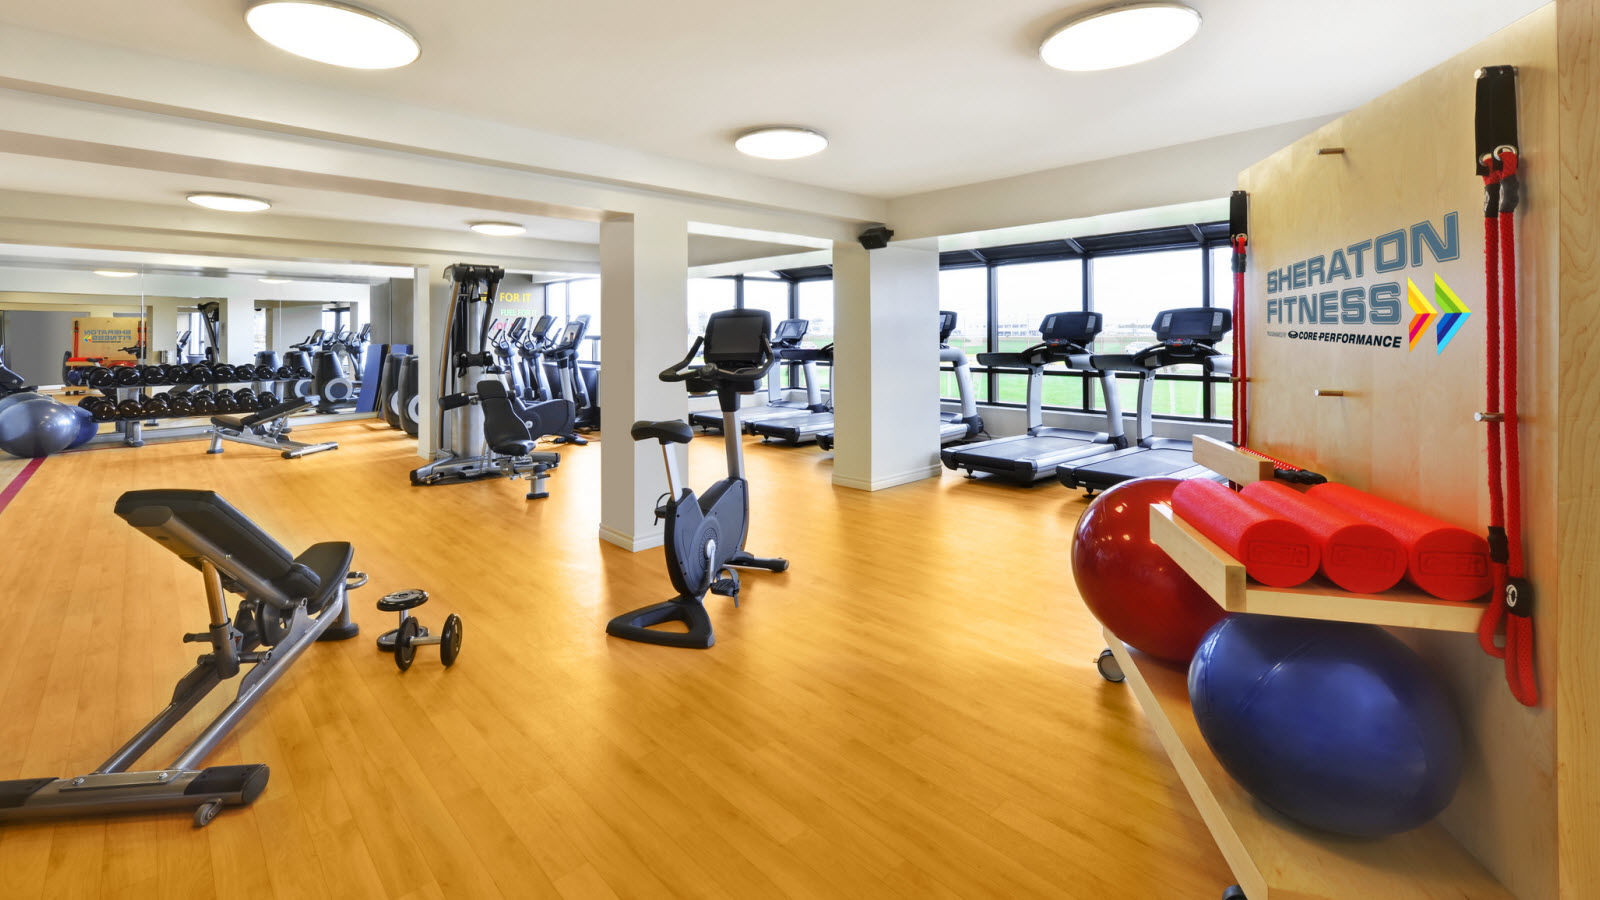 Hotel Features - Fitness Centre